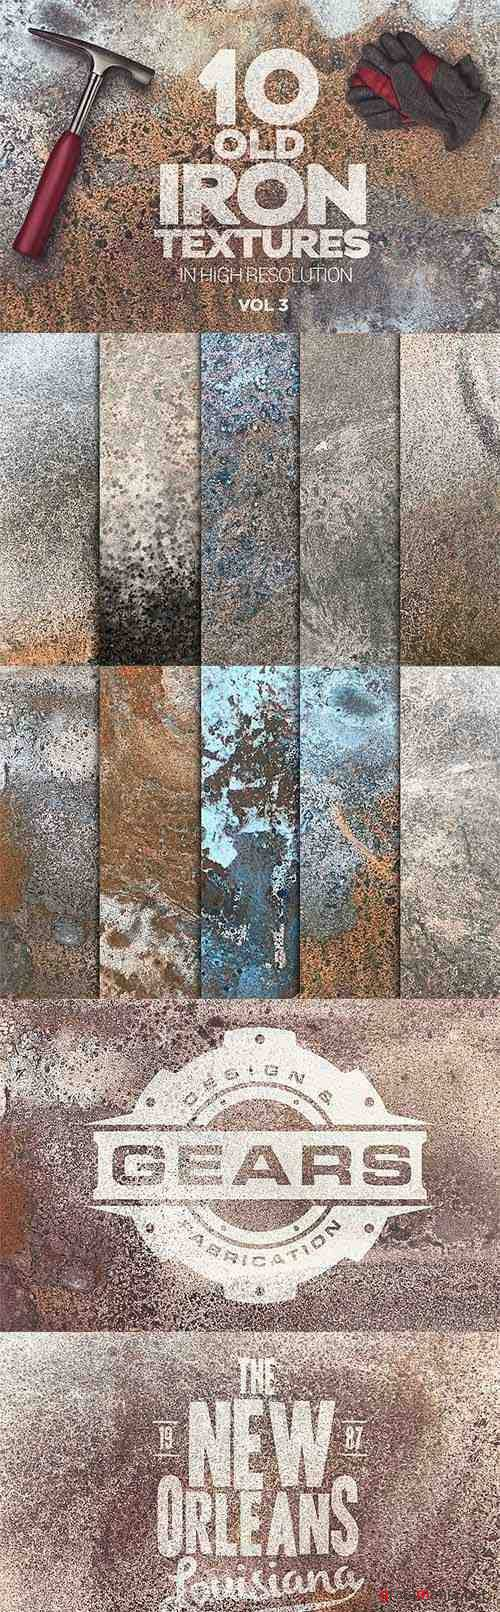 Old Iron Textures x10 vol3 - 3953483